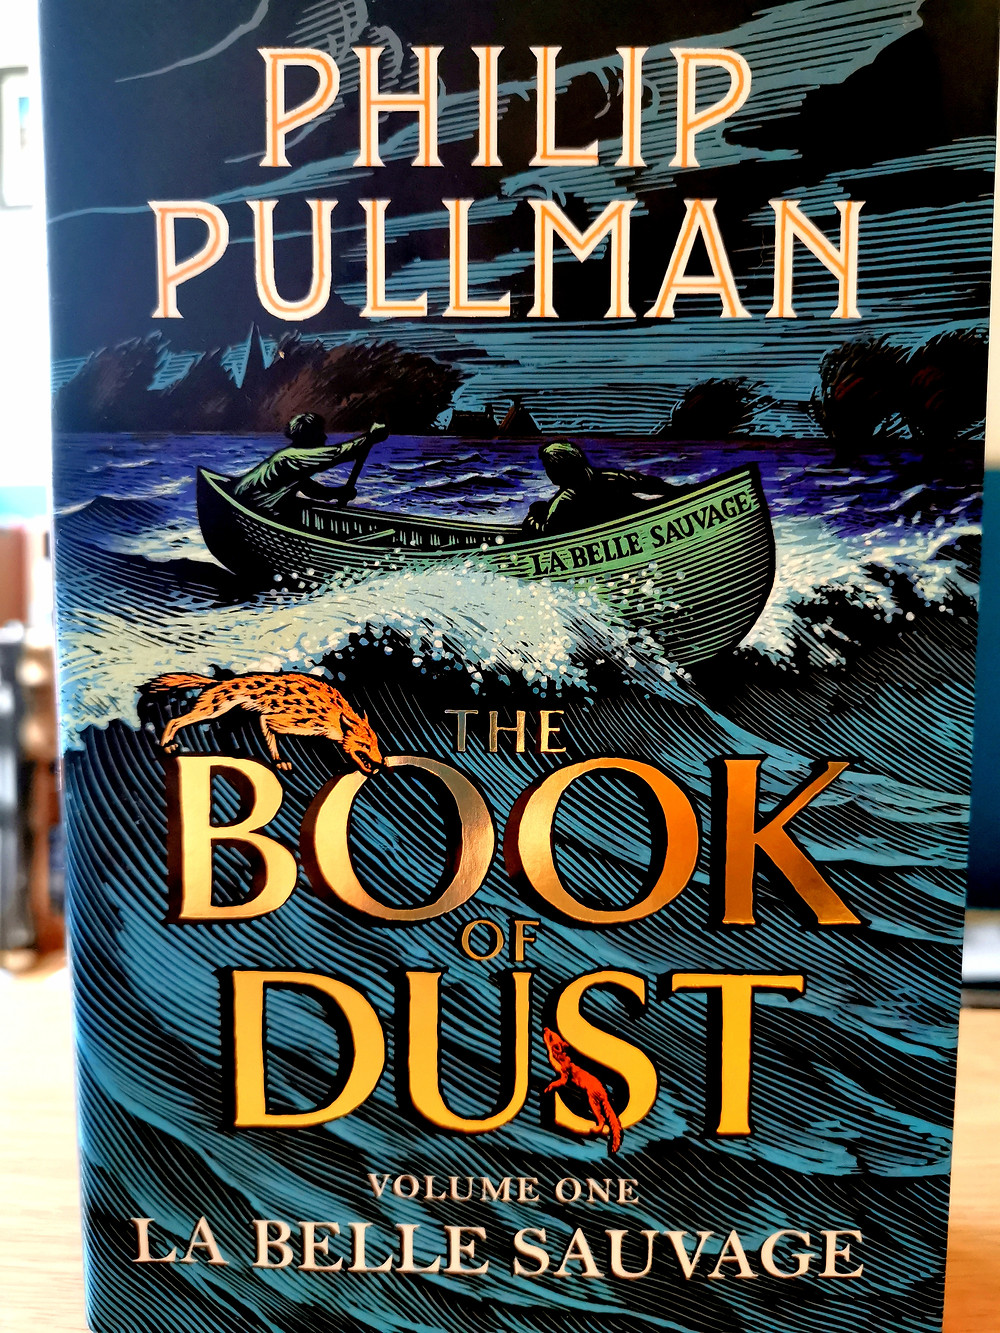 Cover photo of Philip Pullman's 'The Book of Dust Volume 1: La Belle Sauvage', showing a small boat on rough waves and two daemons - a hyaena and a weasel - clambering on the title